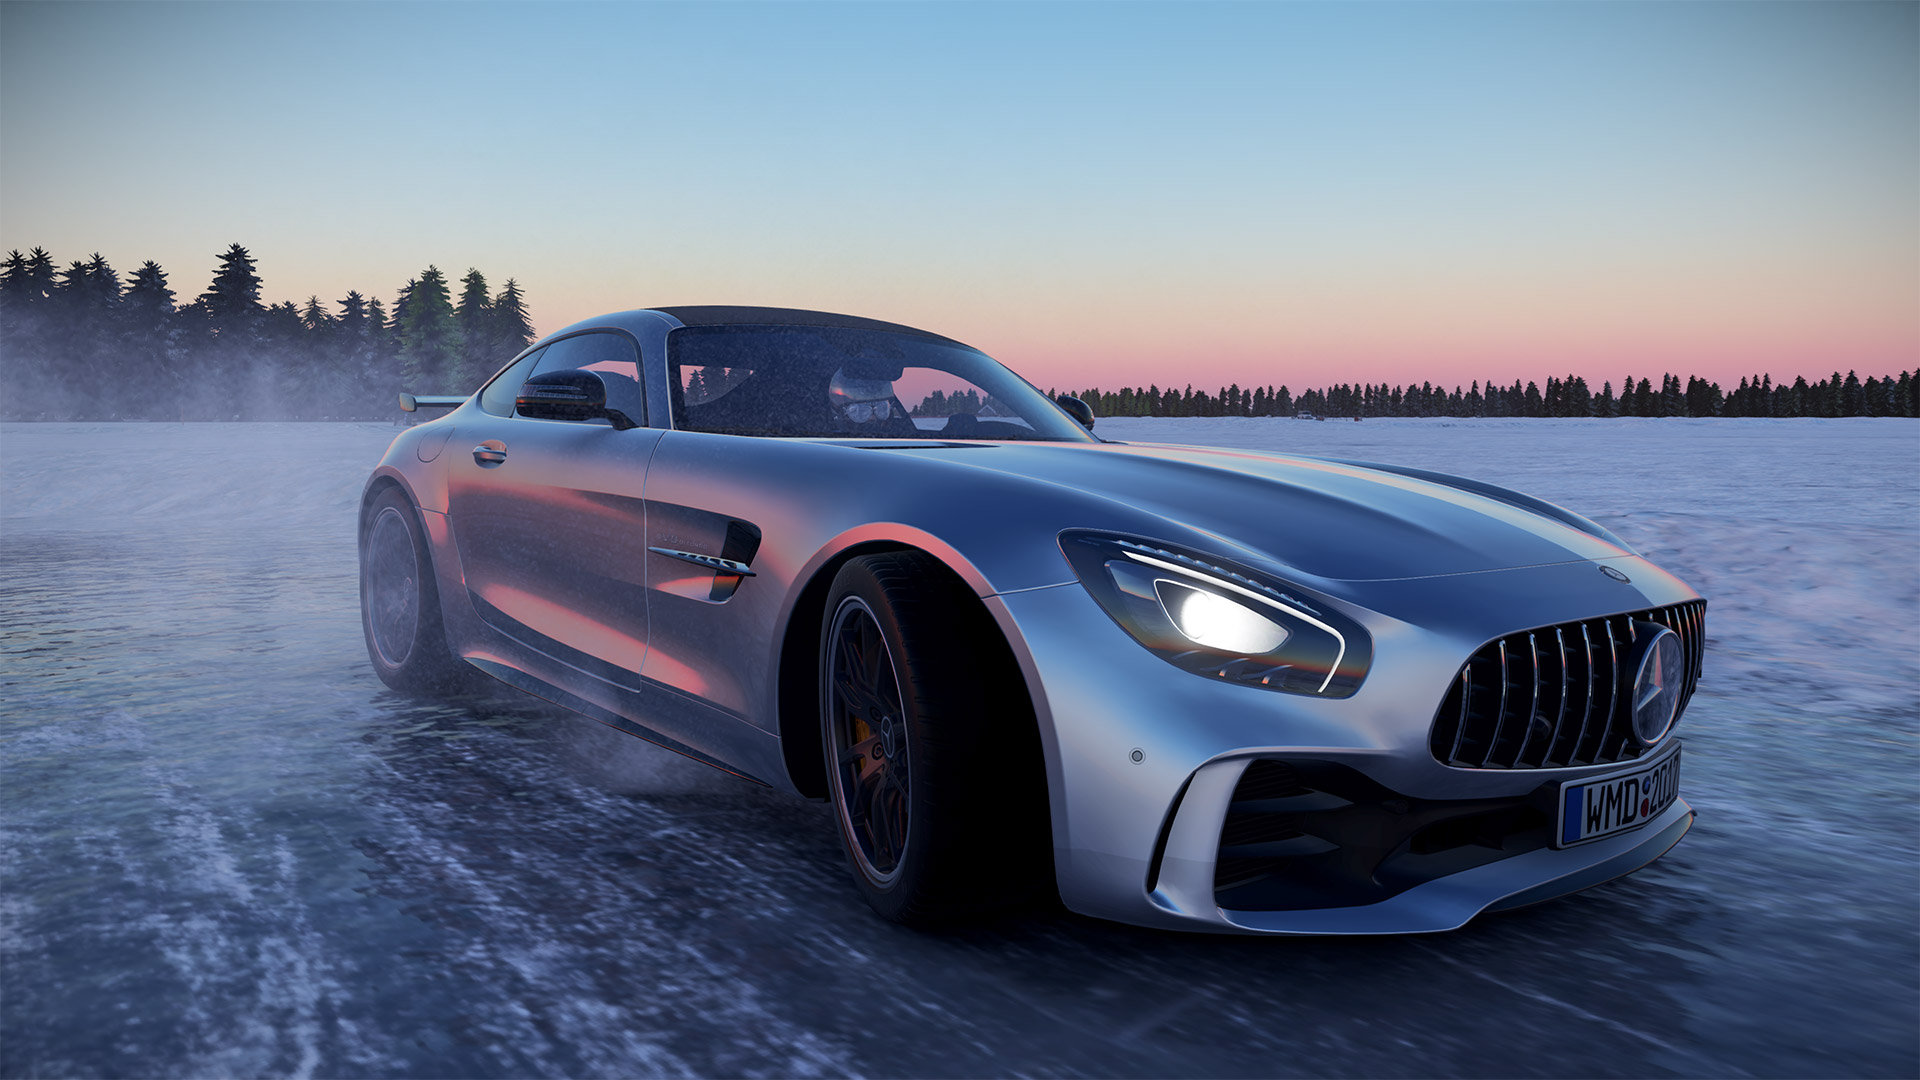 2017 Has Proven To Be A Great Year For Racing Fans And Project CARS 2 Continues The Streak Of Offering Quality Games In Genre